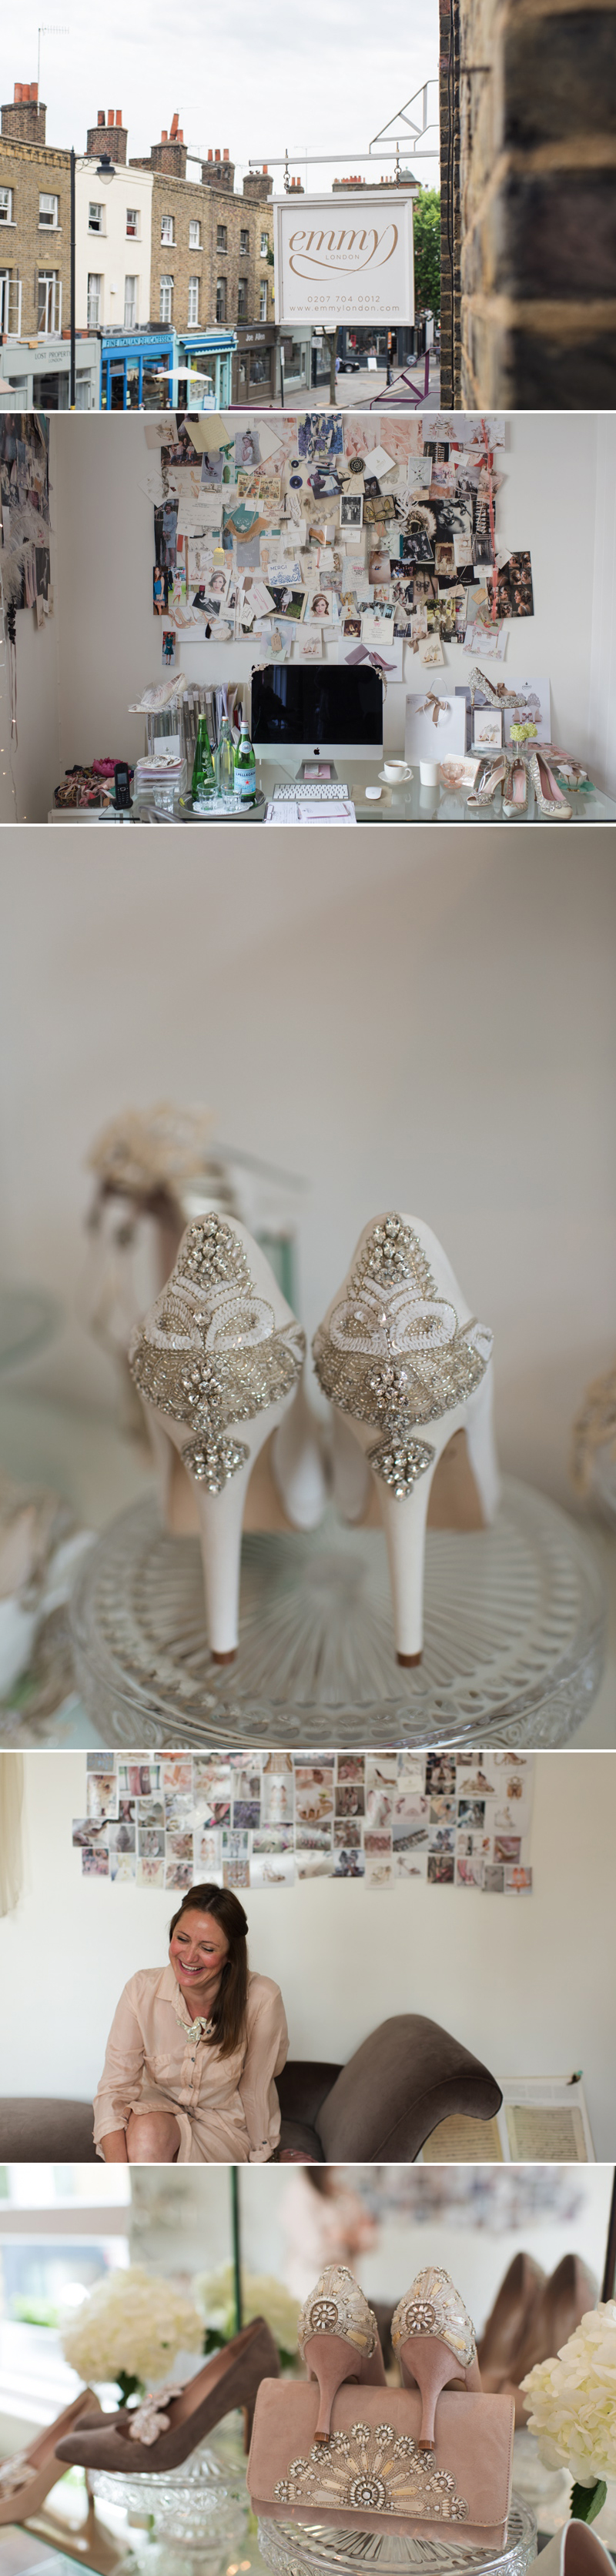 bridal-shoes-wedding-boutique-emmy-london-002